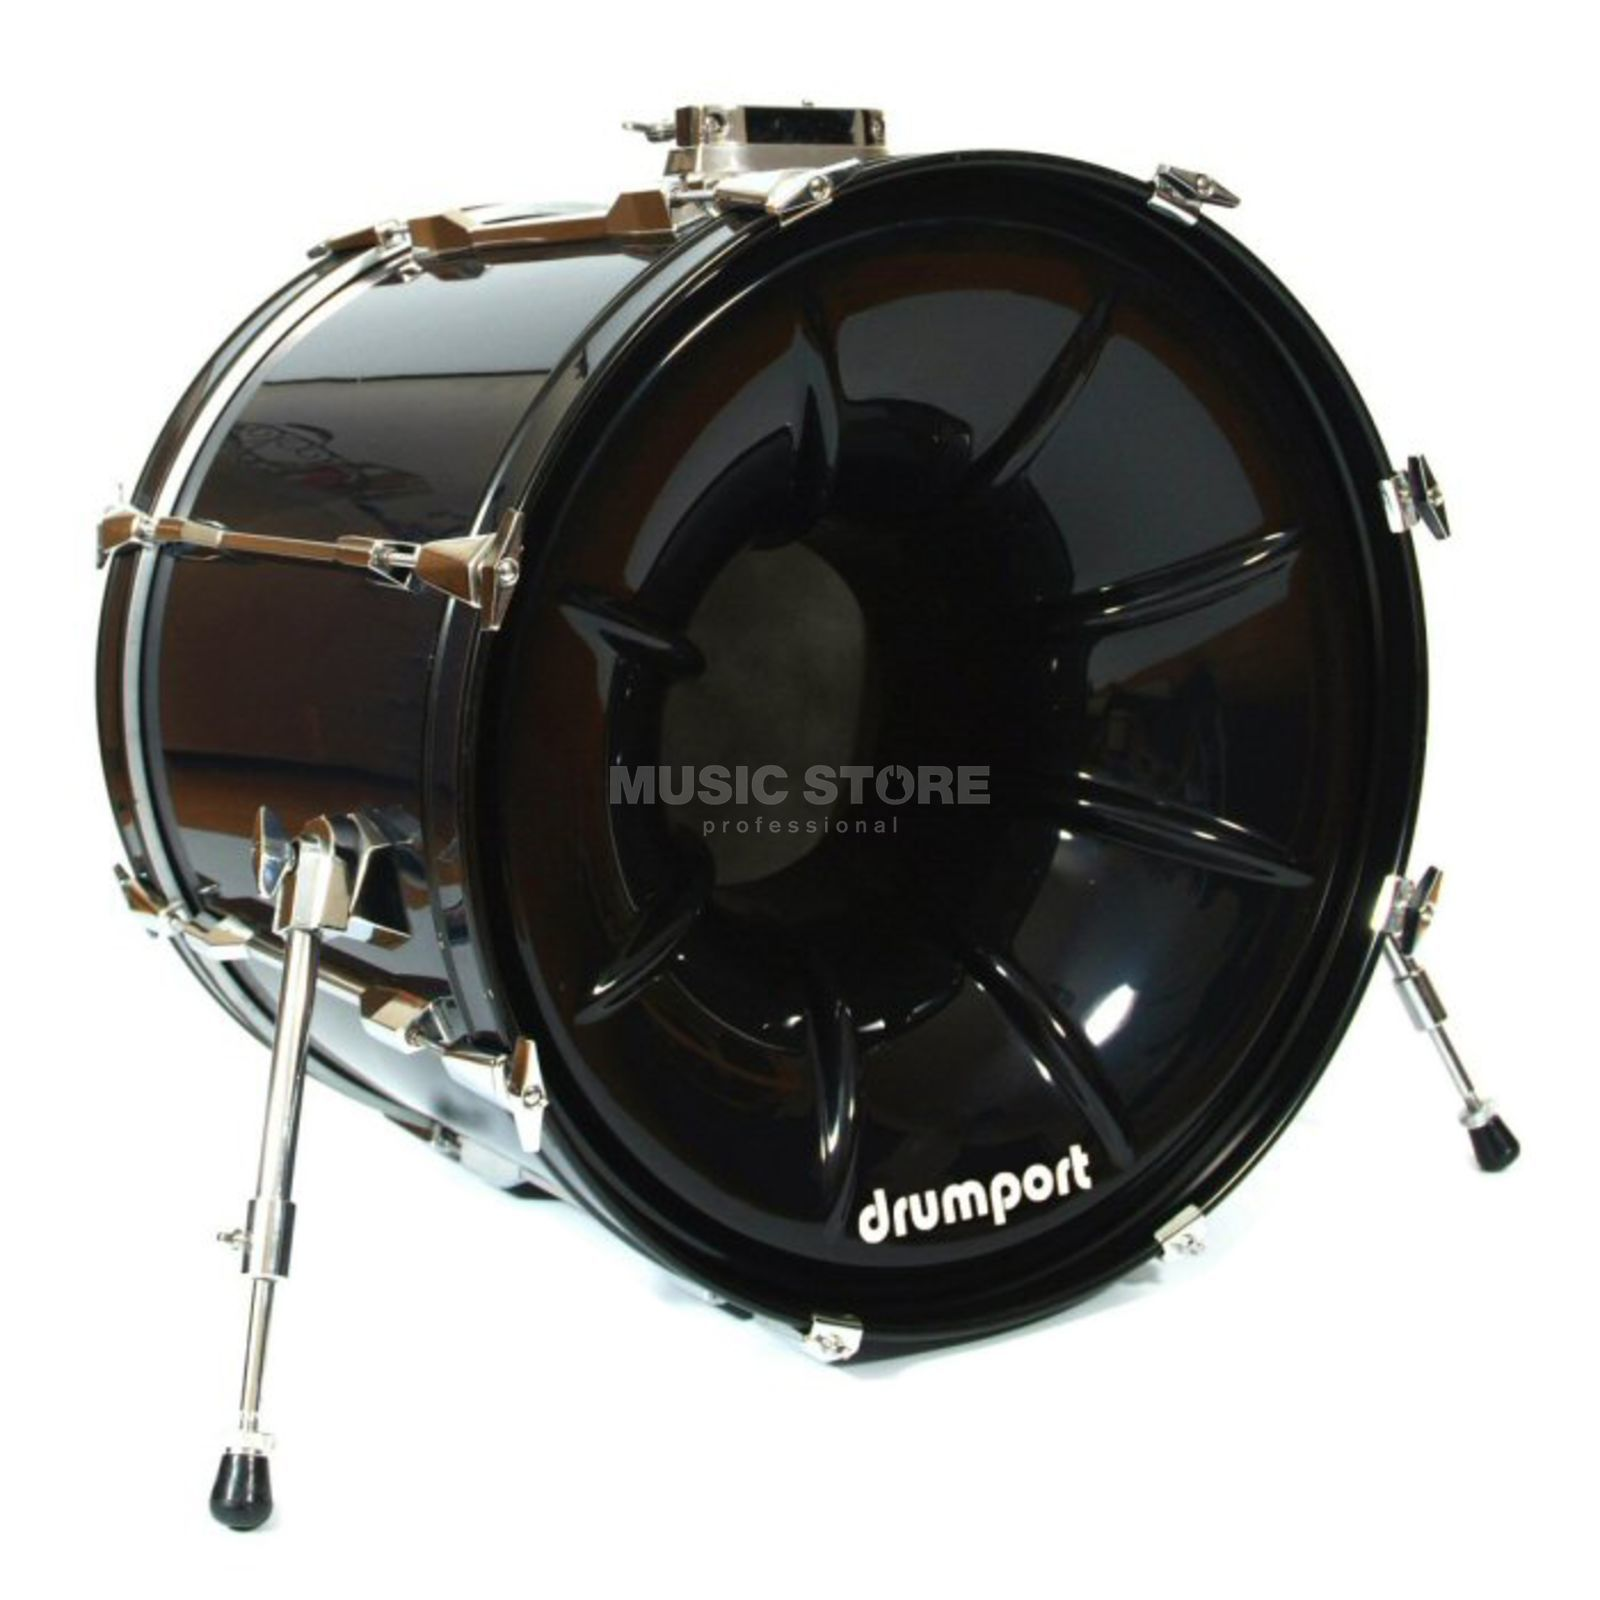 "Drumport Megaport Black 20"", B-Stock  Produktbillede"